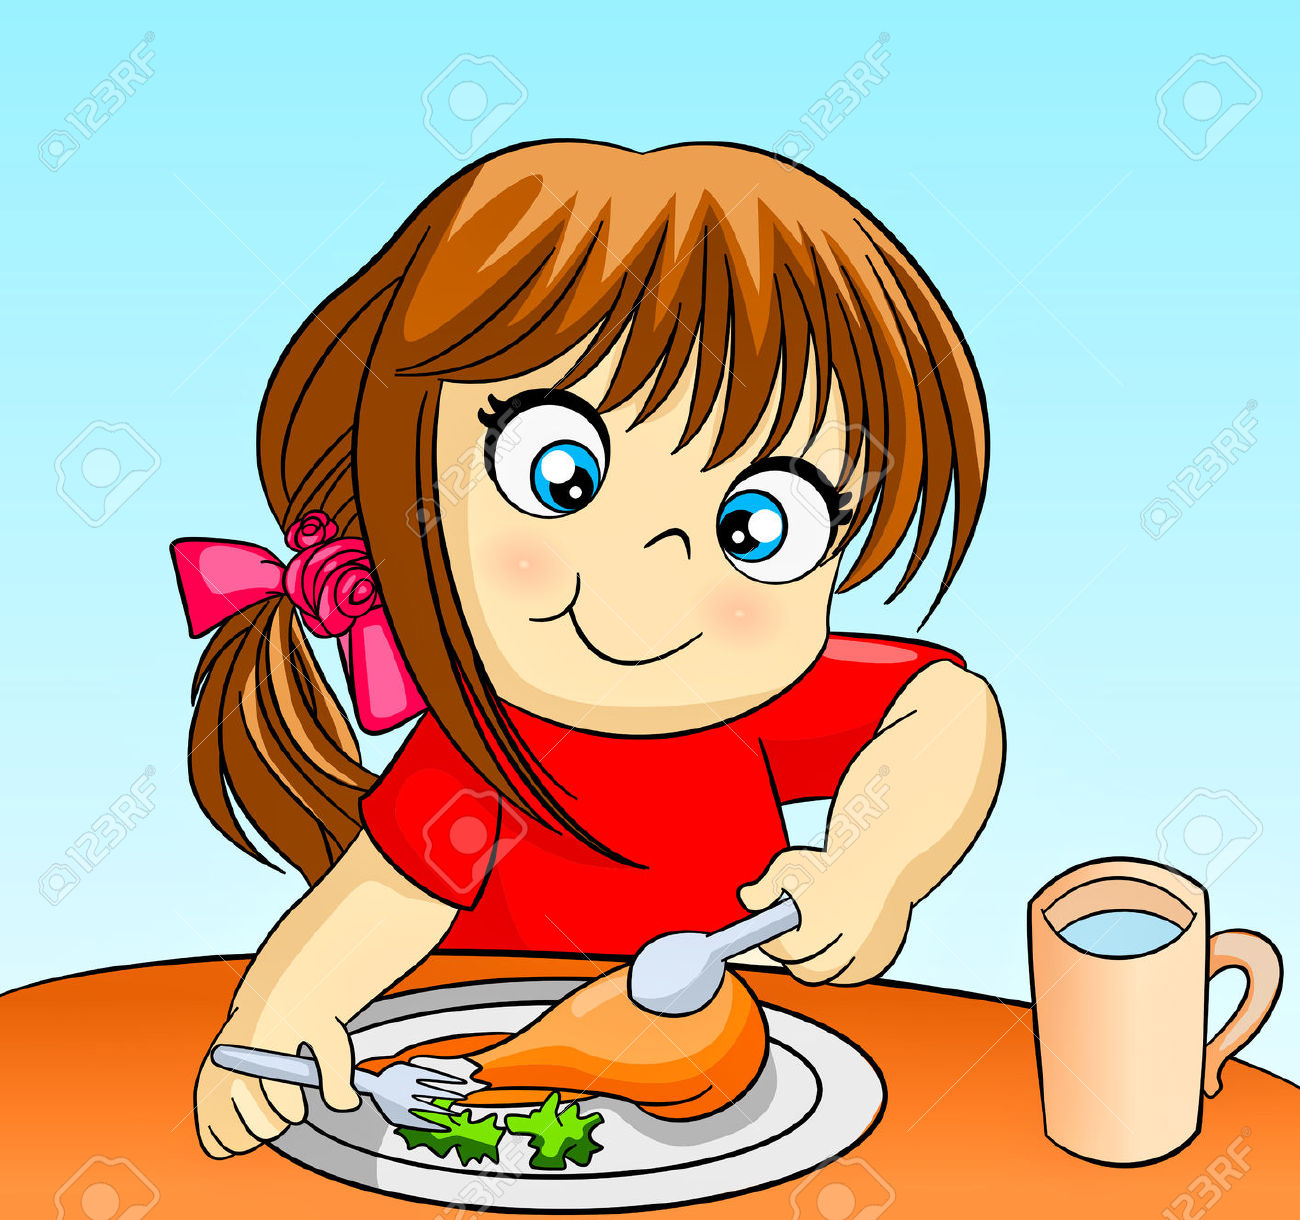 Eat dinner free download. Feast clipart proper eating